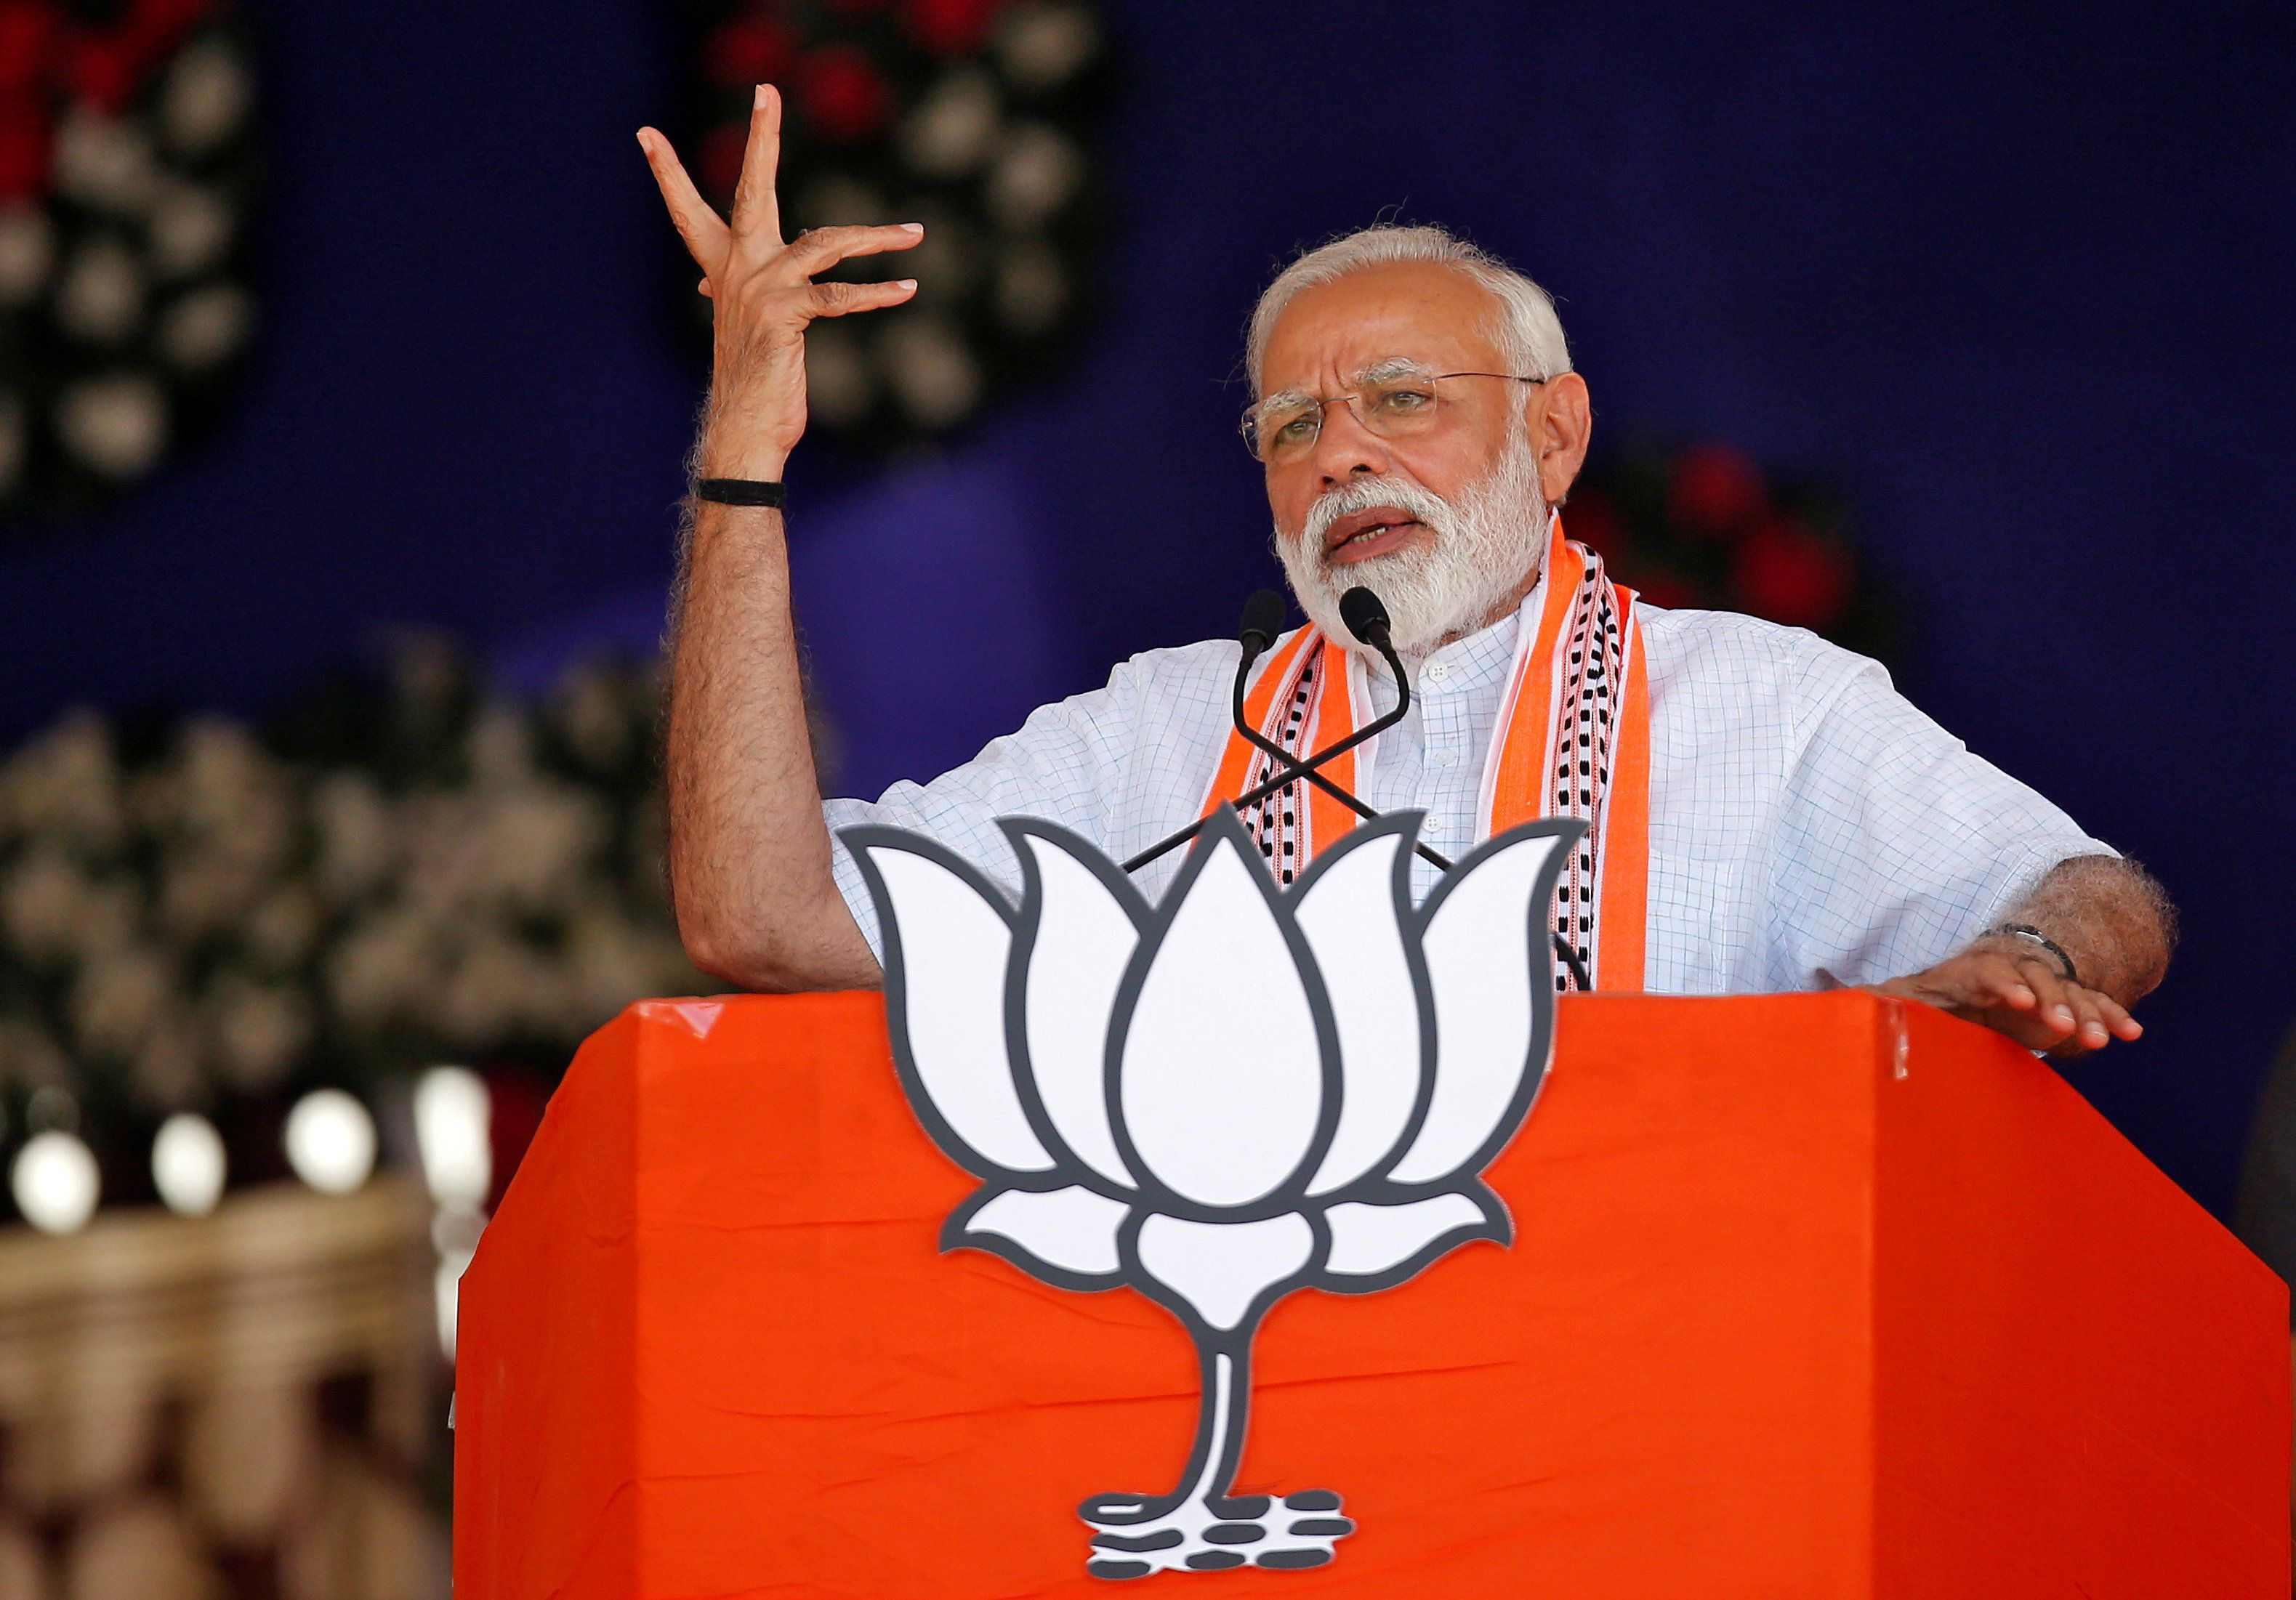 Odisha Poll Officer Suspended By EC For Checking Modi's